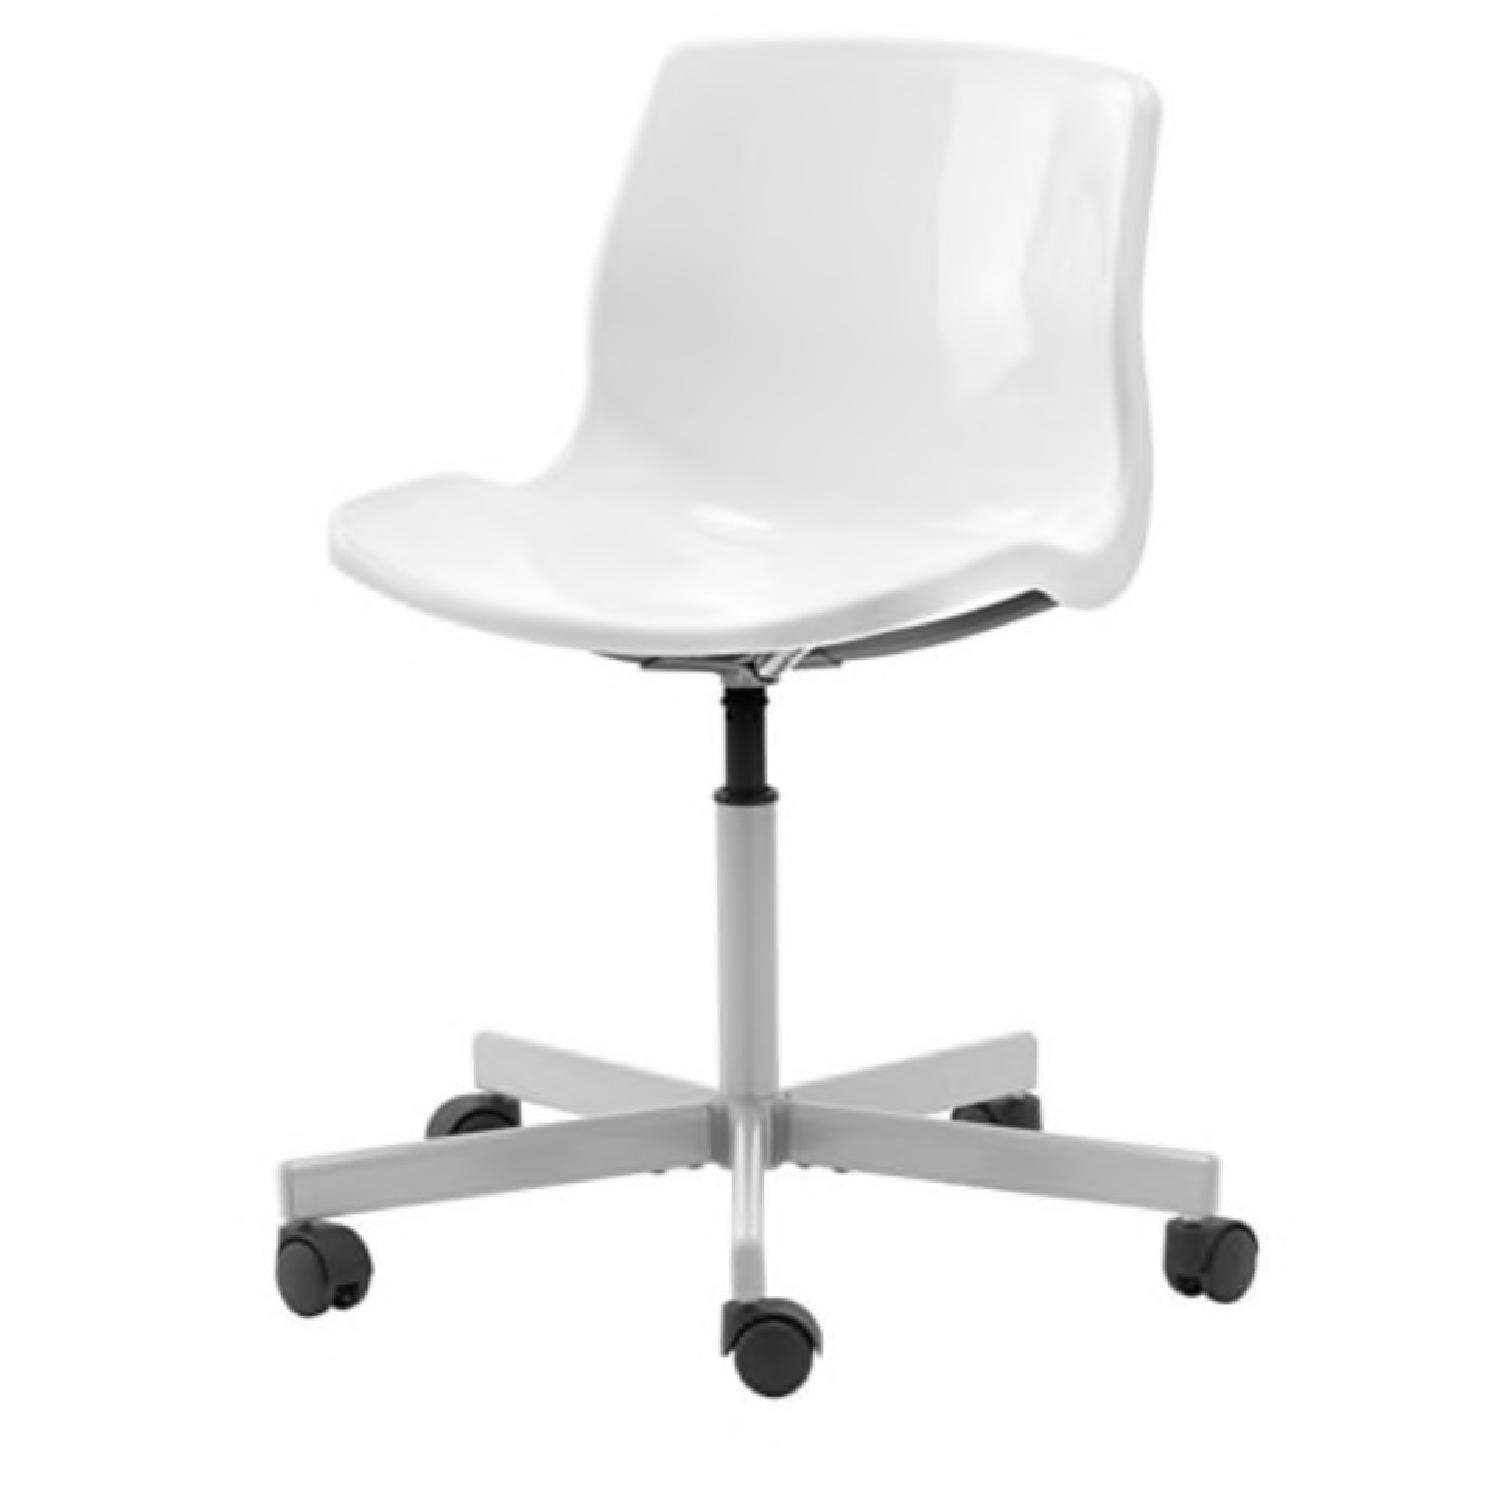 Ikea White Office Chair